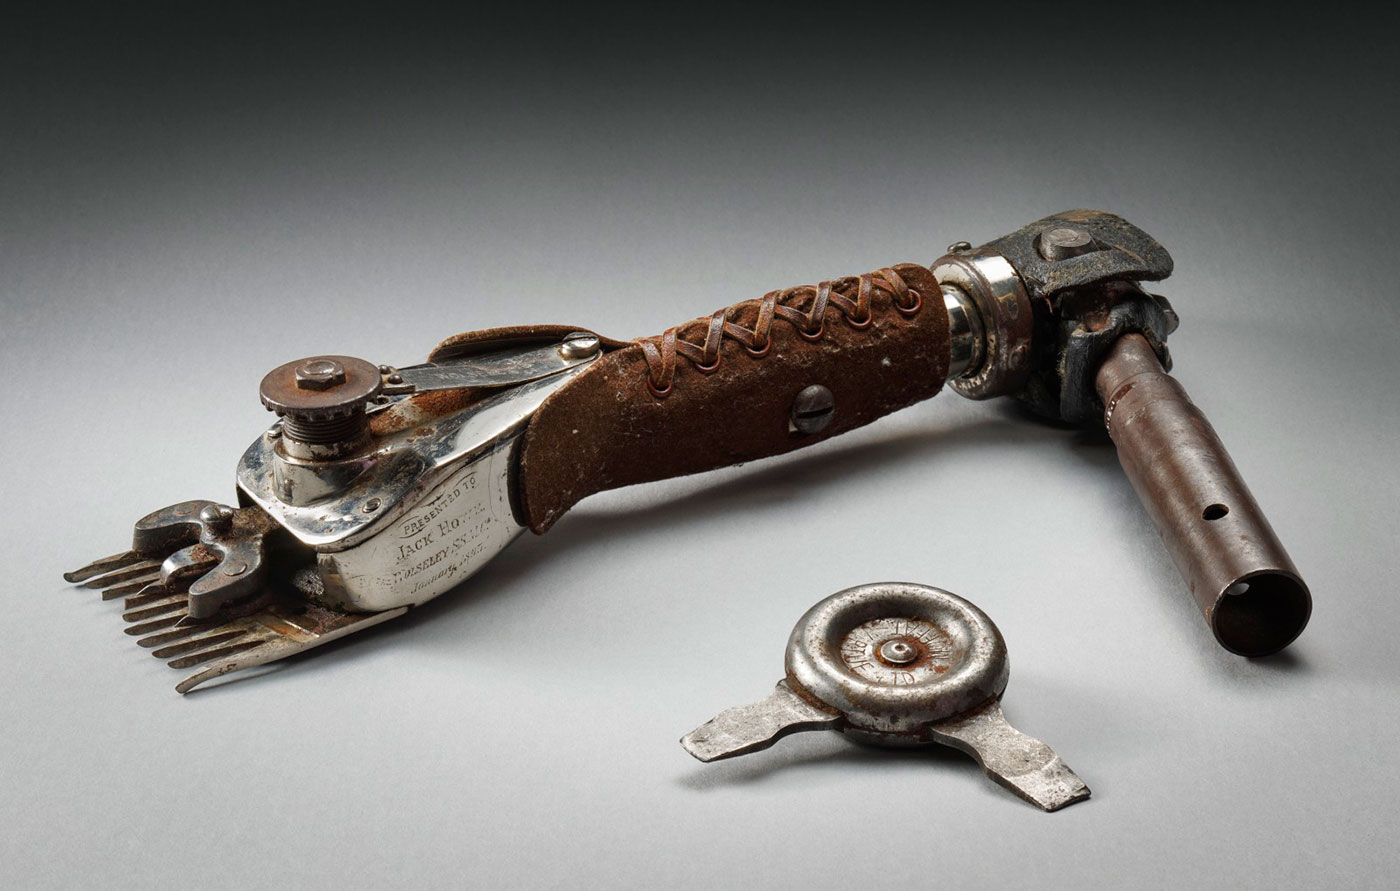 Shearing handpiece with metal blade and handle wrapped in leather - click to view larger image